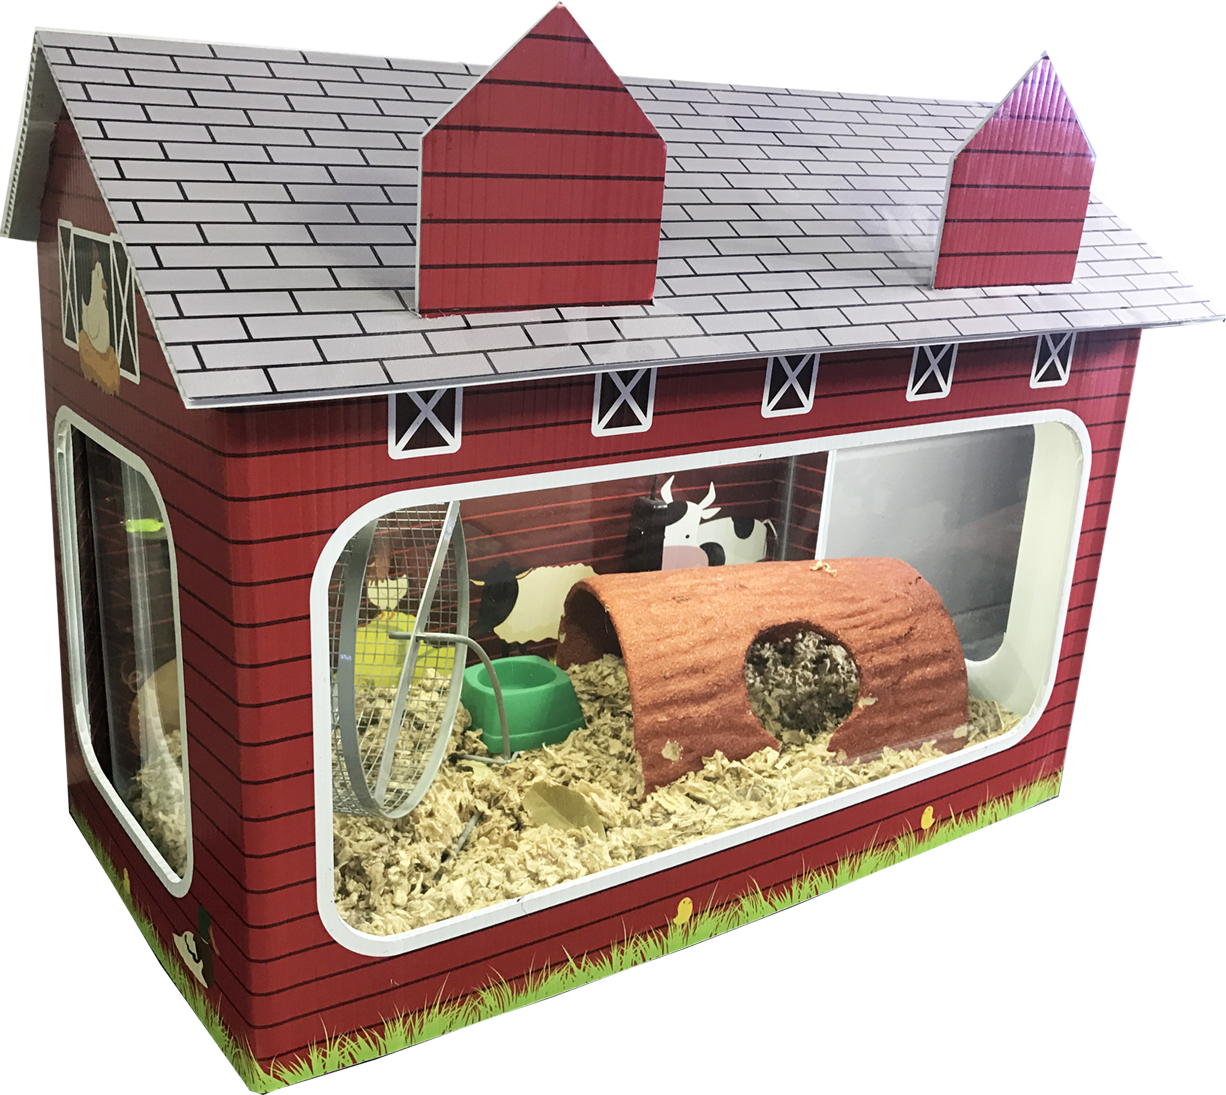 The tank house by r j will dress up your 10 gallon fish tank for Fish tank house